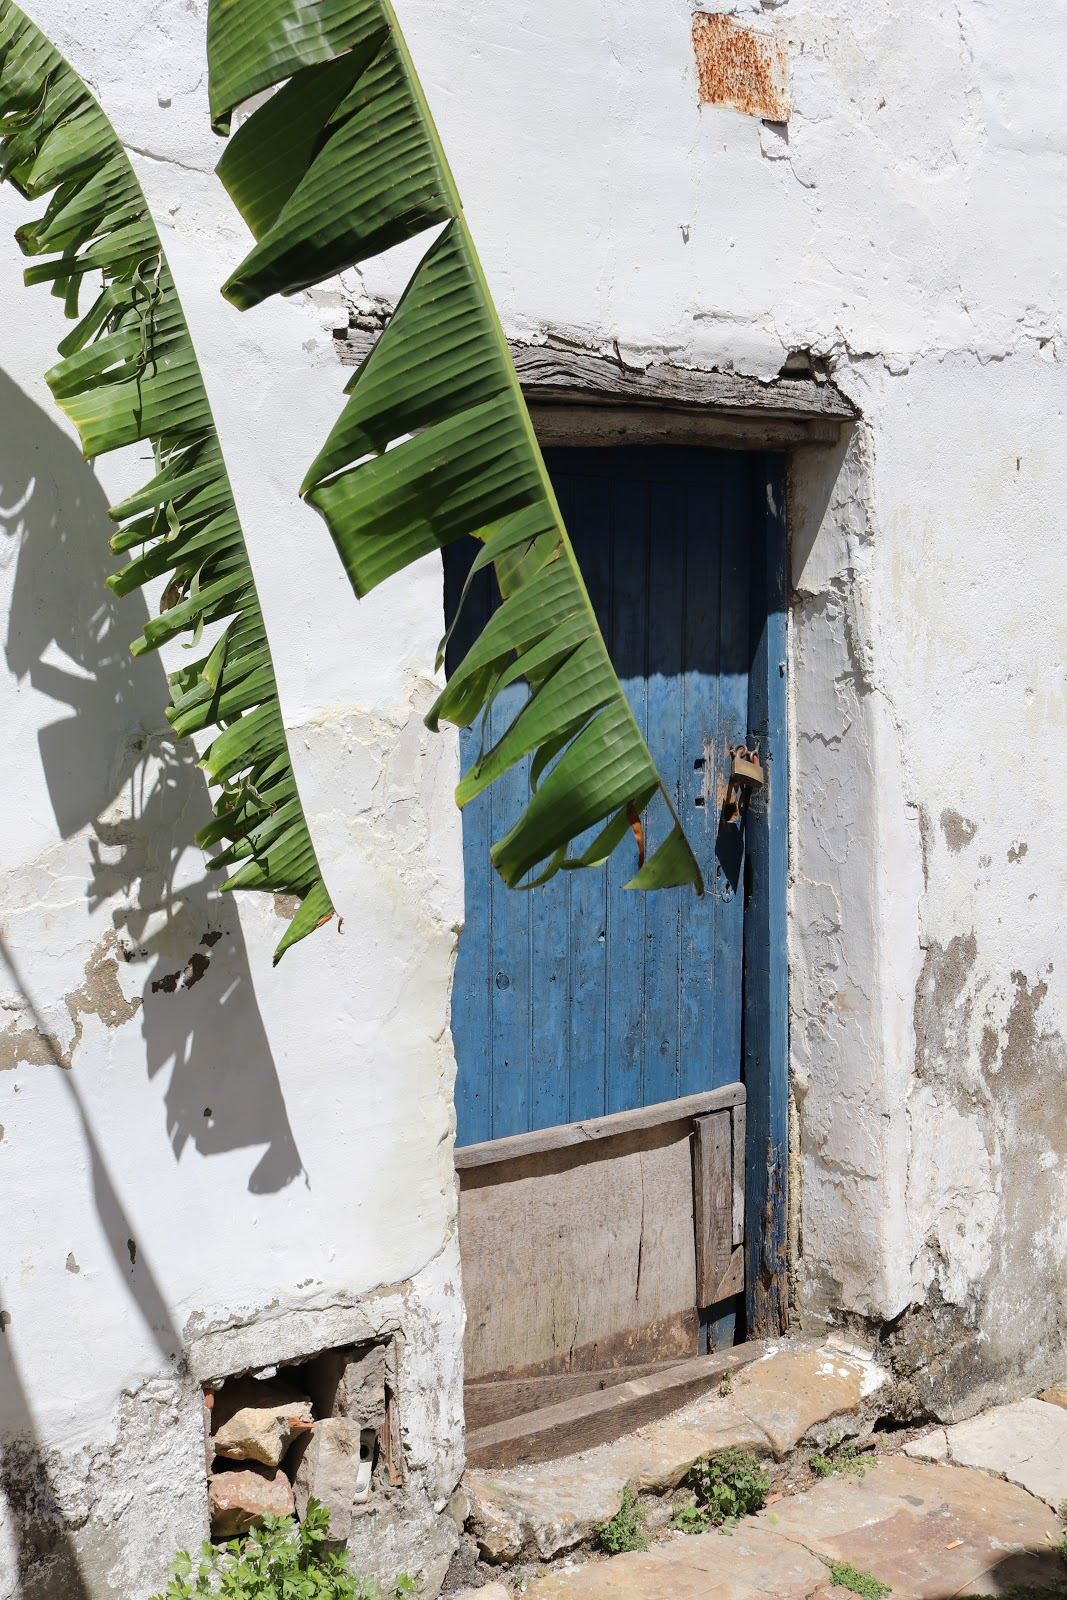 palm tree against blue door against white walls of Castillo de Castellar town